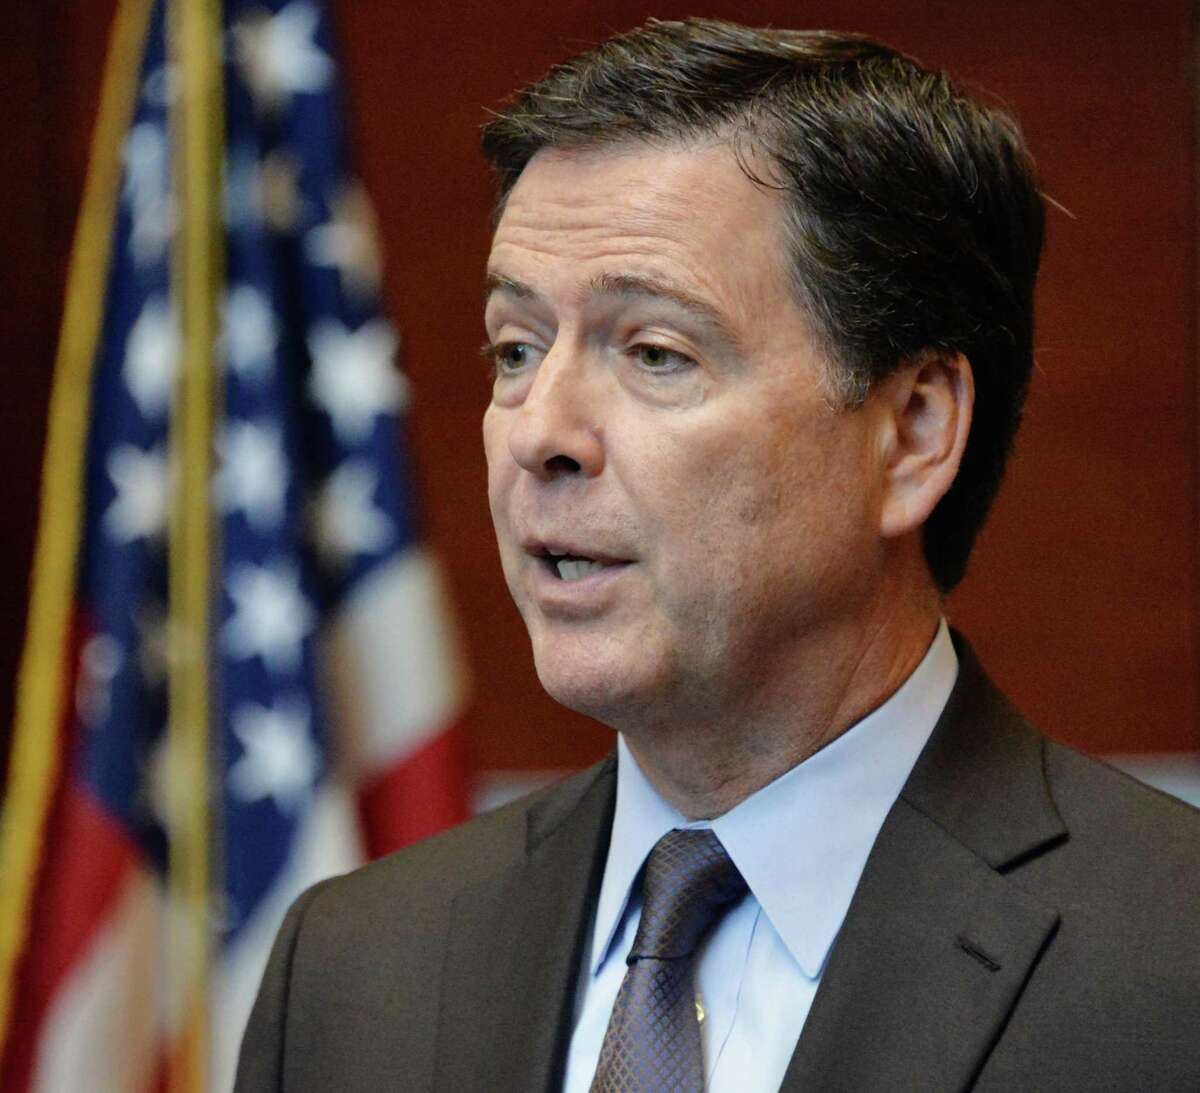 FBI Director James B. Comey, center, at podium, the presidentially appointed seventh Director of the FBI, is joined by Albany area local, state and federal law enforcement agency partners during a news conference Tuesday Sept. 23, 2014, in Albany, NY. (John Carl D'Annibale / Times Union)